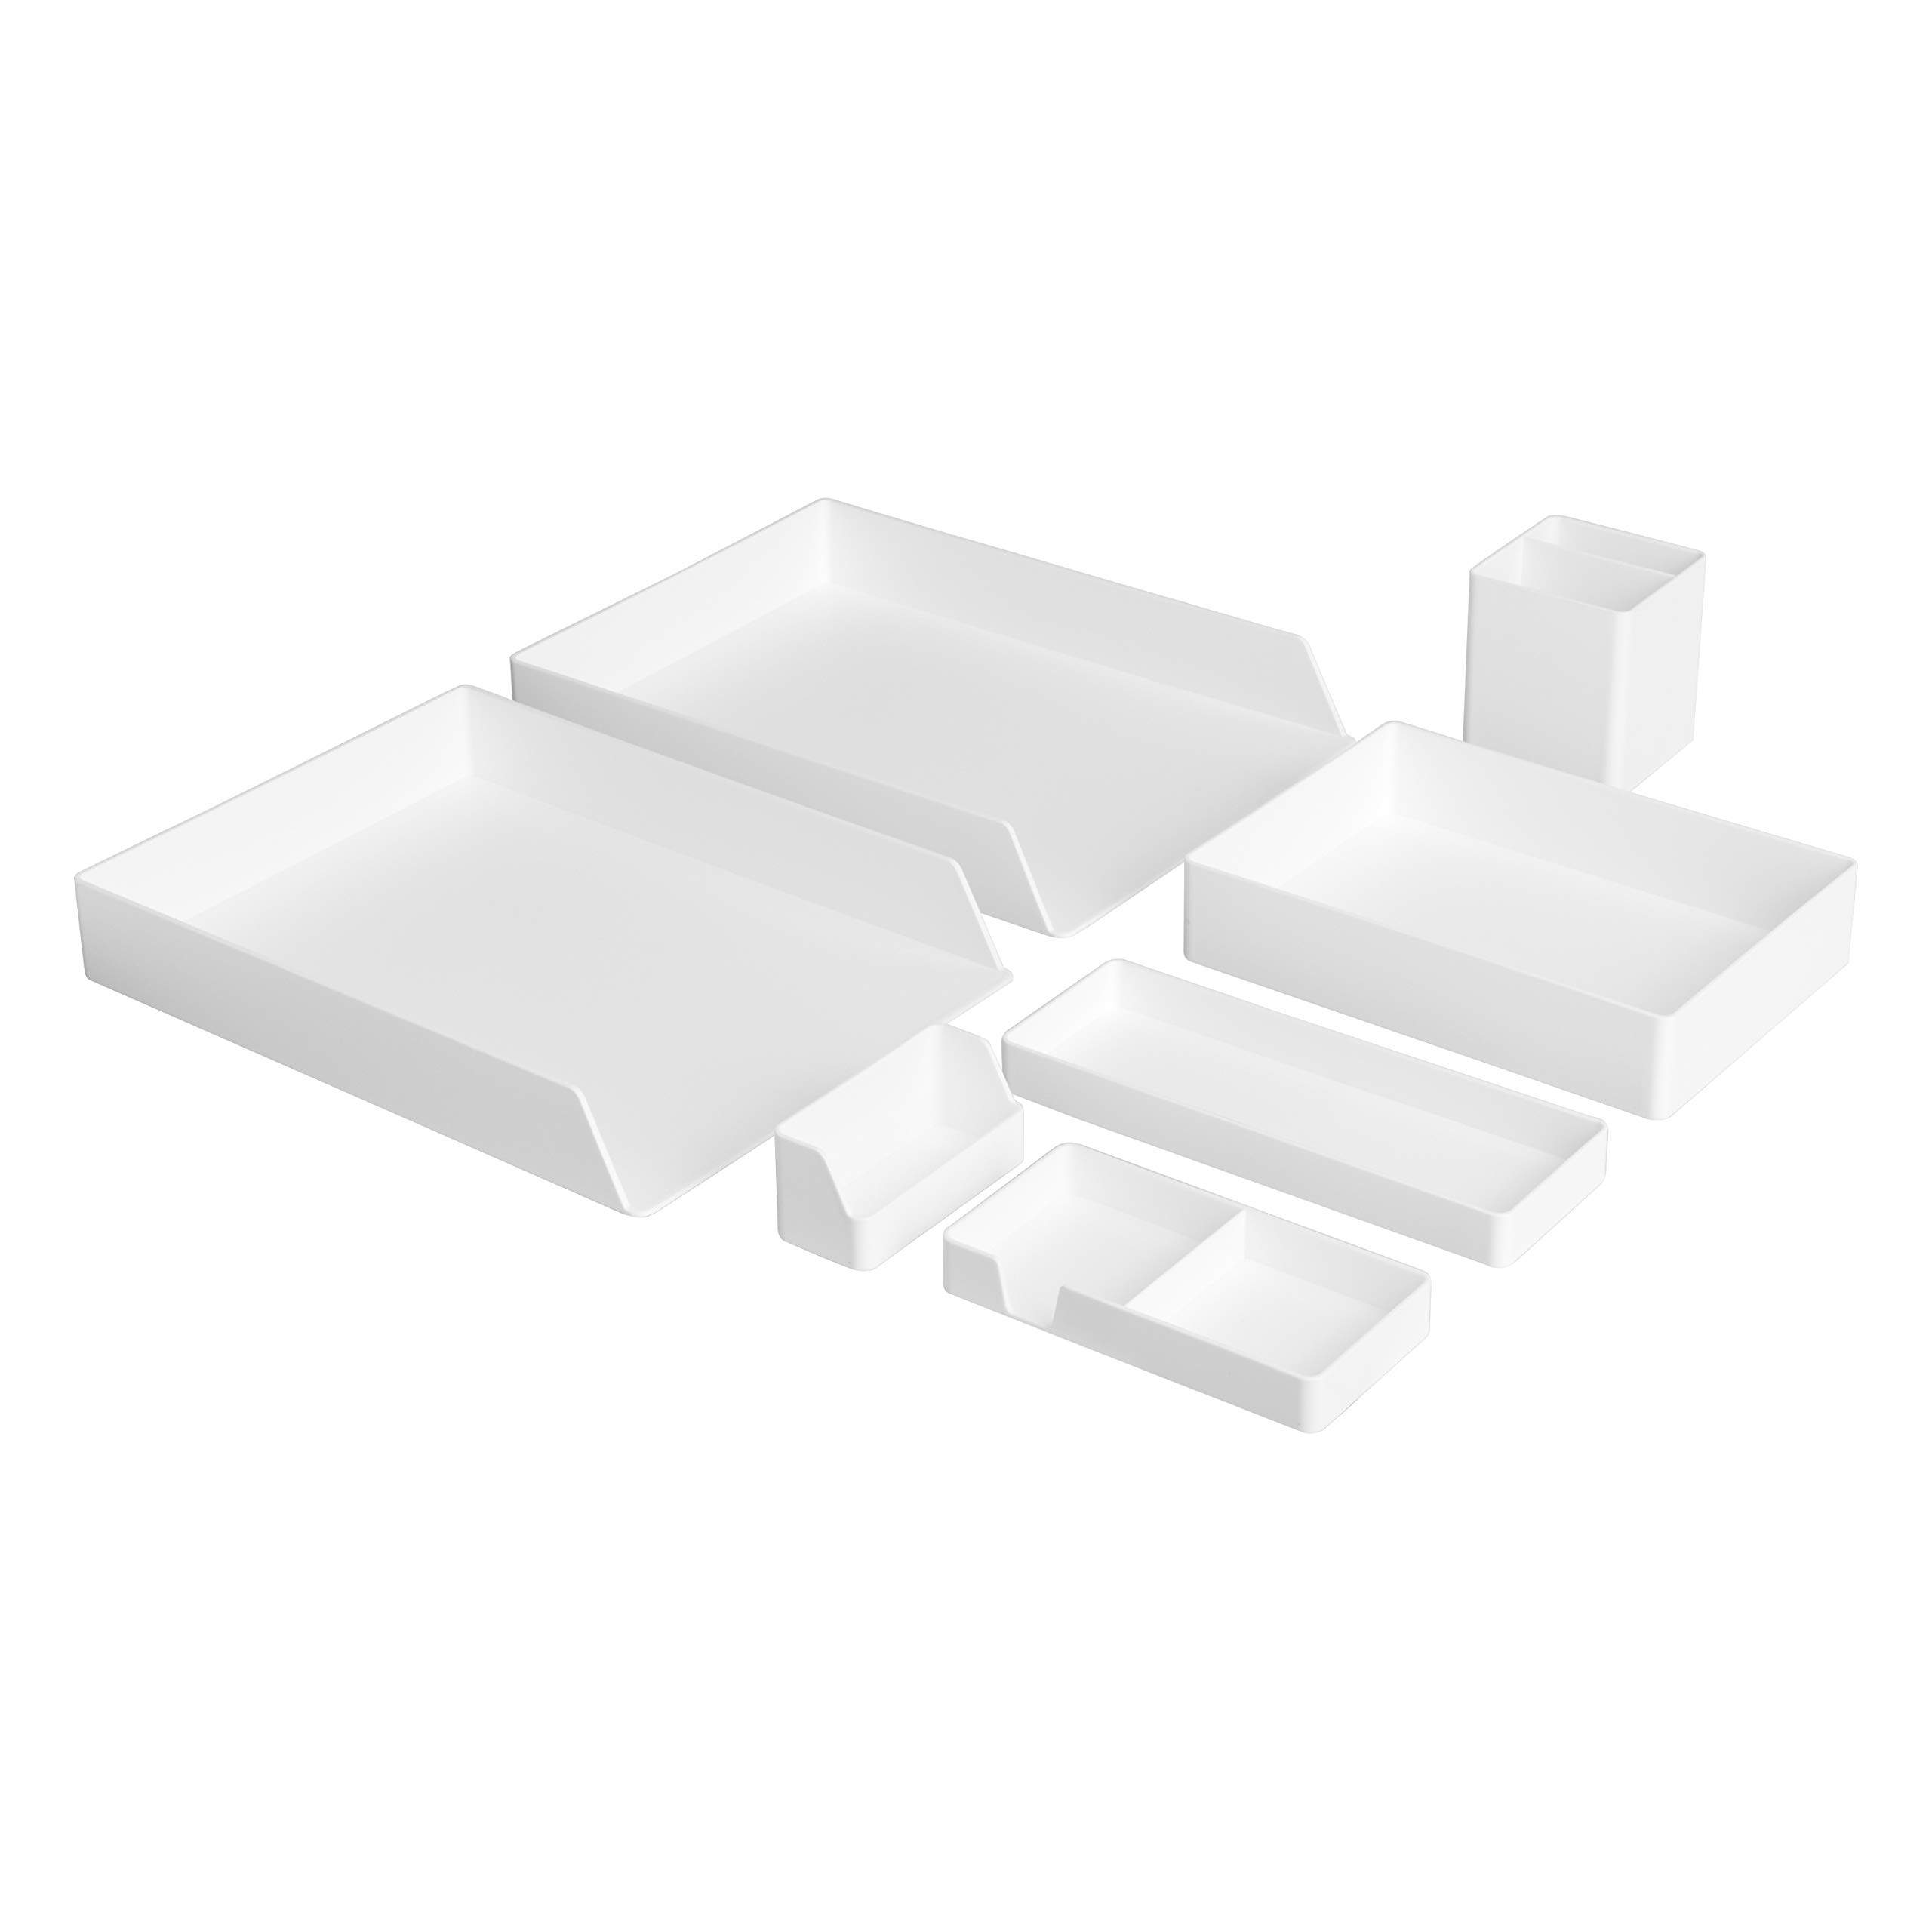 AmazonBasics Plastic Desk Organizer Bundle- Letter Tray 2-Pack/Accessory Tray/Half Accessory Tray/Small Tray/Pen Cup/Name Card Holder, White